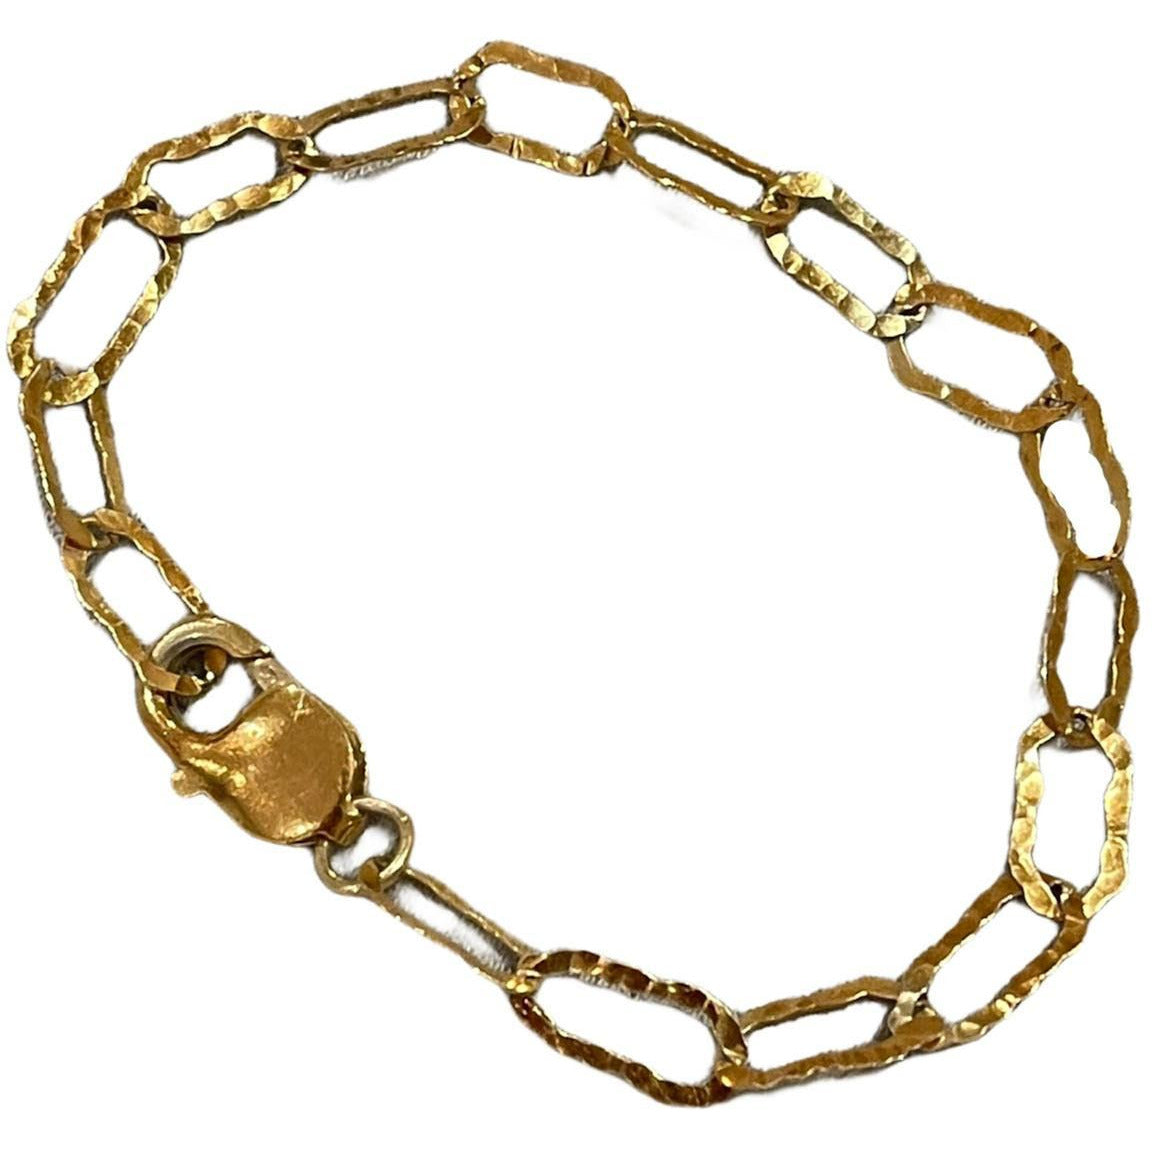 Charm Link Chain Bracelet 24K gold plating over 925 Recycled Silver, Made to order, 10 days lead time - natoorio